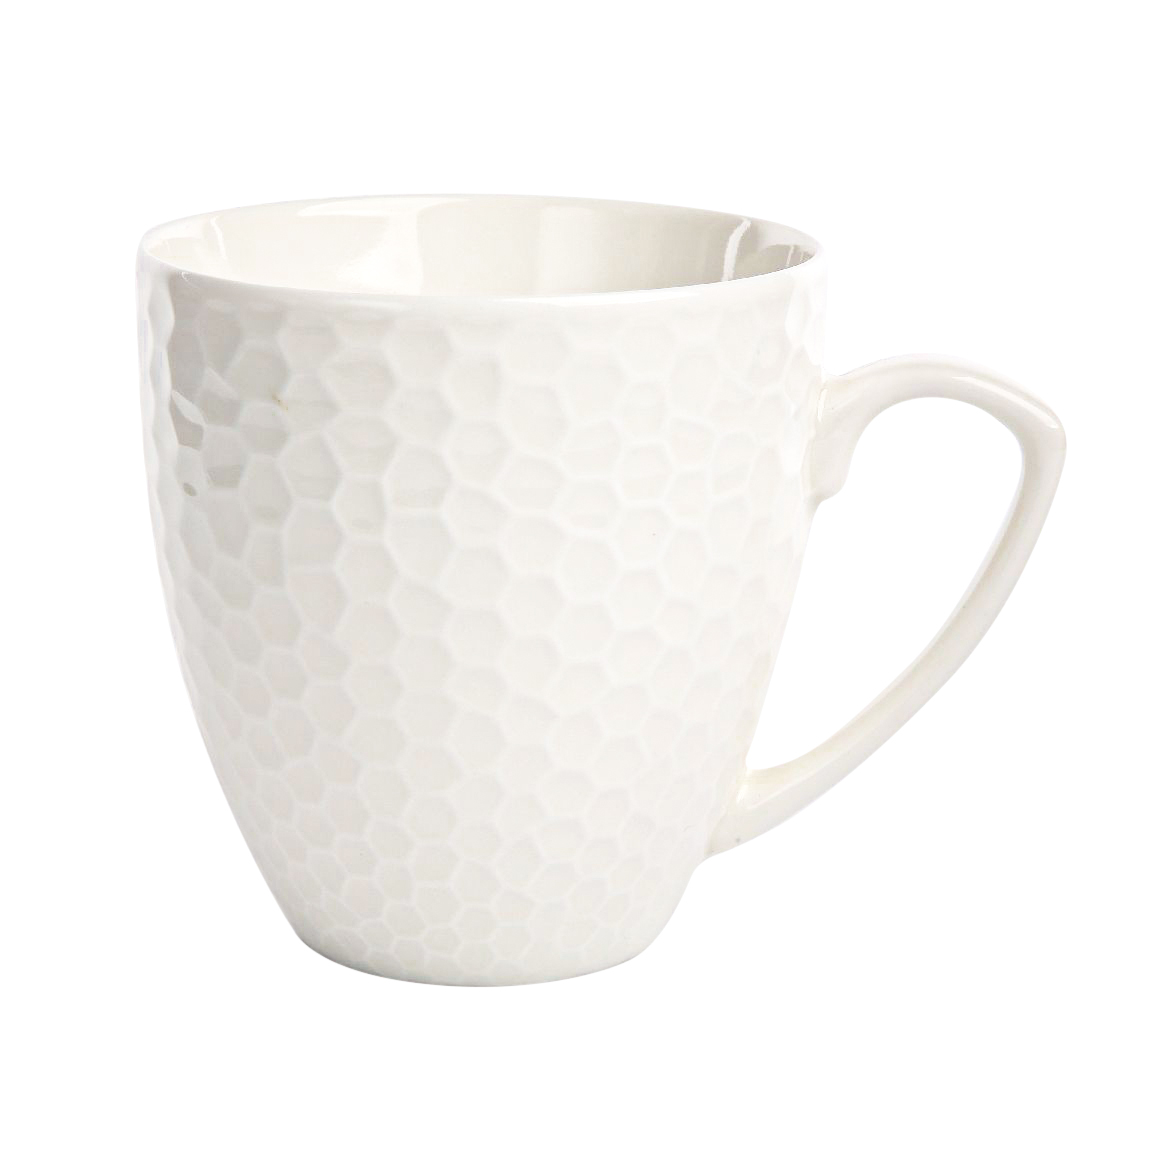 Kubek porcelanowy duży w plastry miodu Altom Design Honey 430 ml